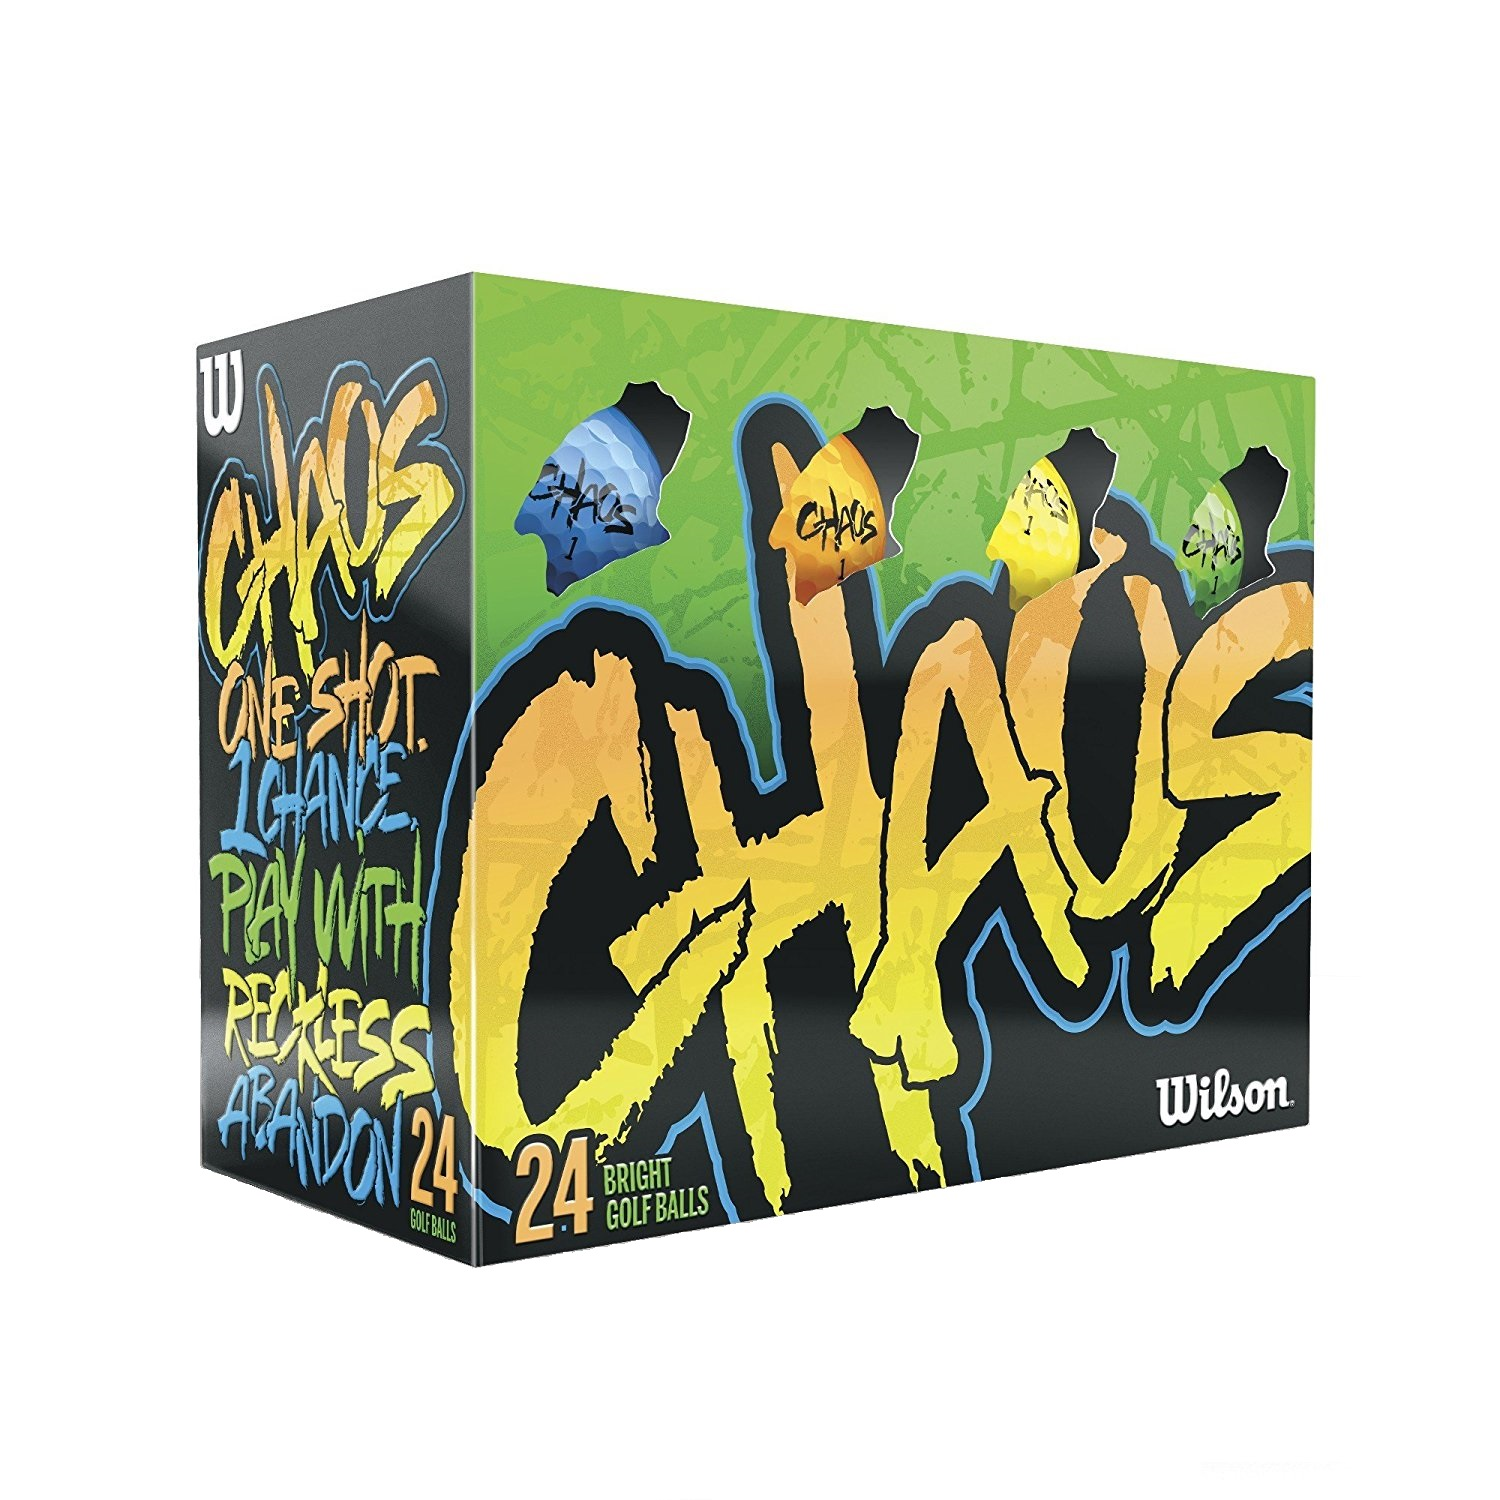 Wilson Chaos Golf Balls, 24 Ball Pack - Multi-Color